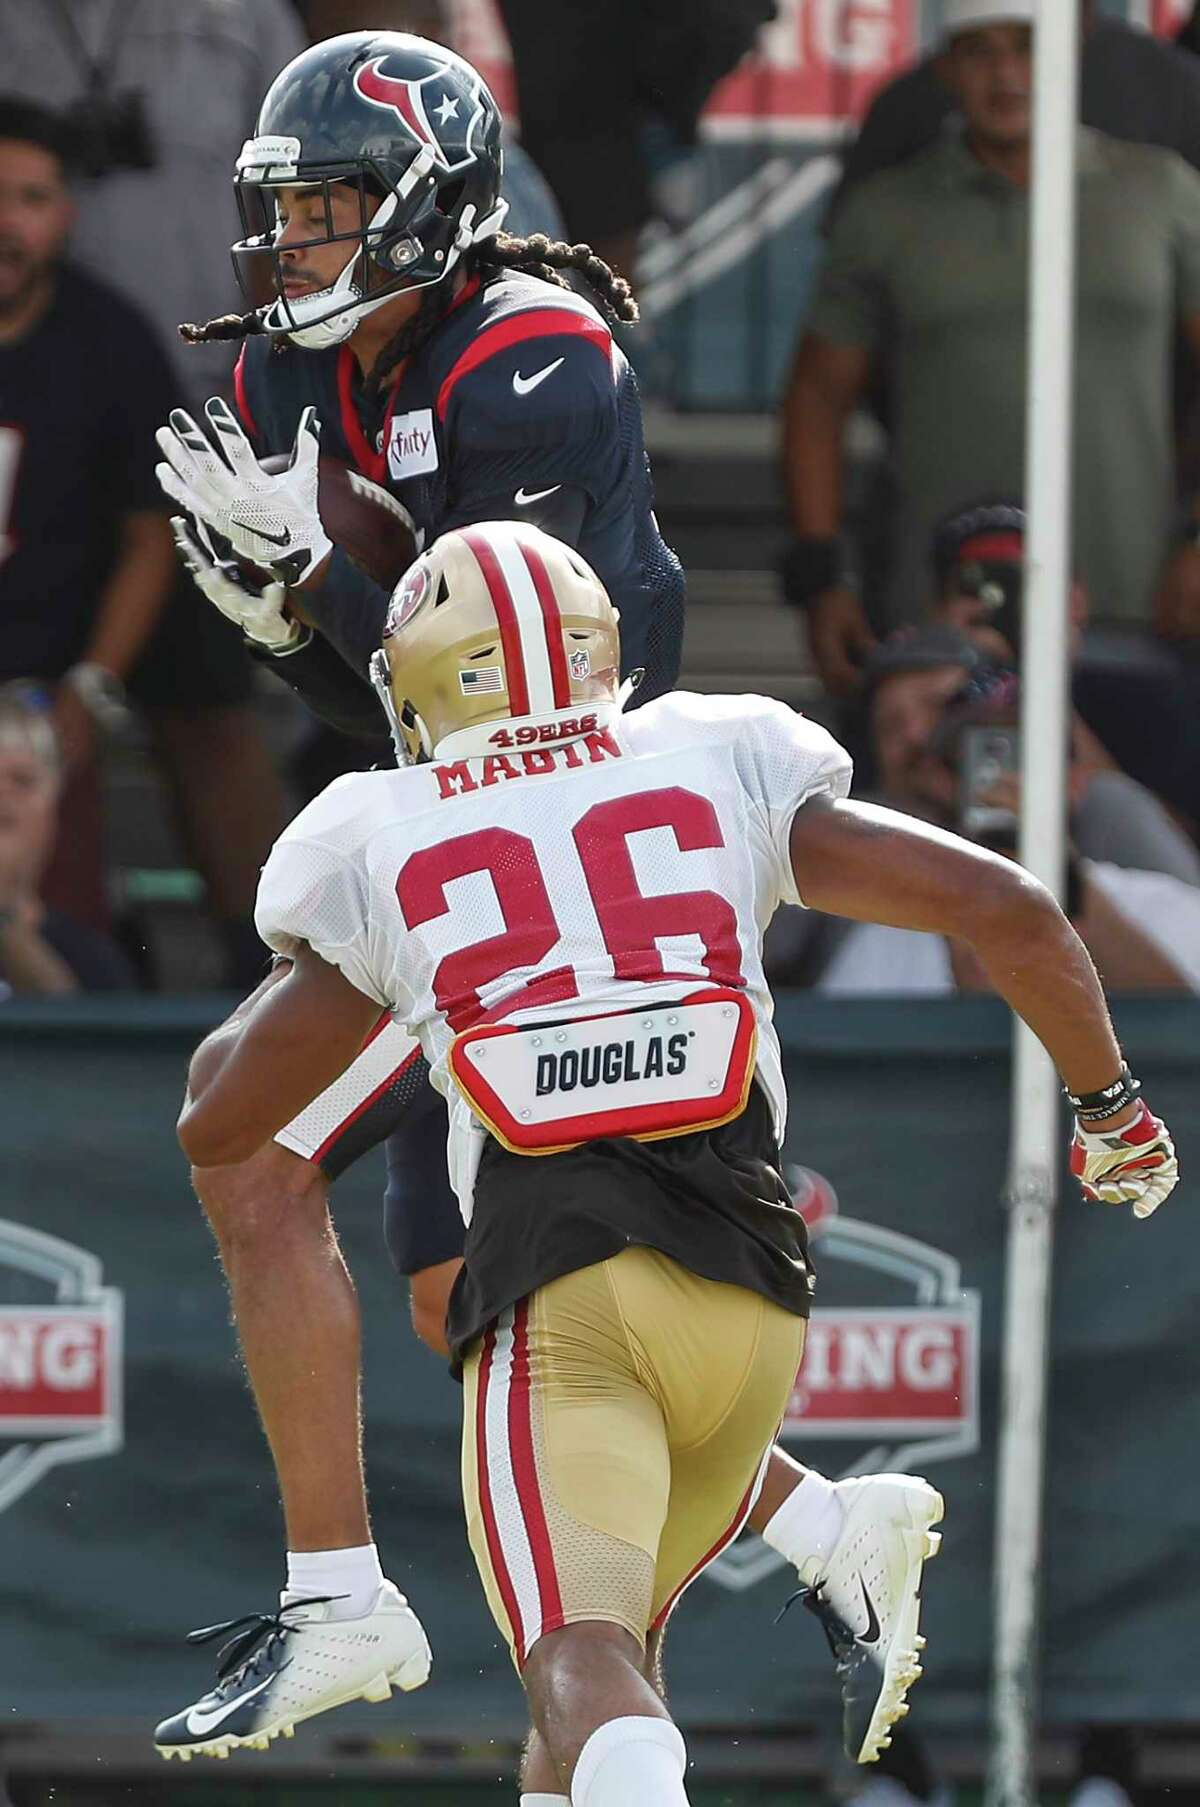 Houston Texans wide receiver Will Fuller (15) makeas catch over San Francisco 49ers cornerback Greg Mabin (26) during a joint practice between the Texans and 49ers at the Methodist Training Center on Thursday, Aug. 16, 2018, in Houston.